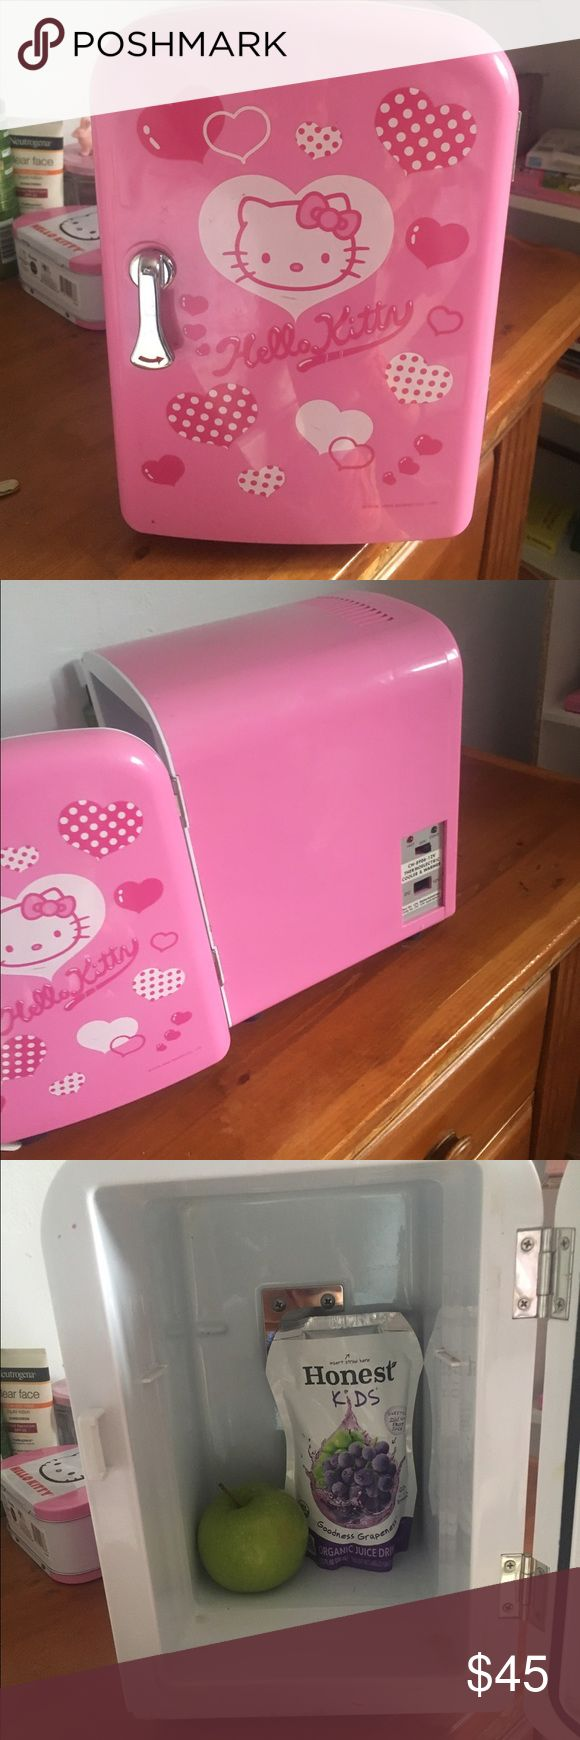 2004 edition Hello kitty Fridge Kawaii pink mini fridge! Great for dorm or office! I'm only selling to buy more school supplies for my 1st grader since I lost my job. Please feel free to ask questions or make an offer. I really love keeping snacks in this and it comes with a car adapter so if you have kids and you want to keep things cool but don't want ice this will be your BFF Hello Kitty Other